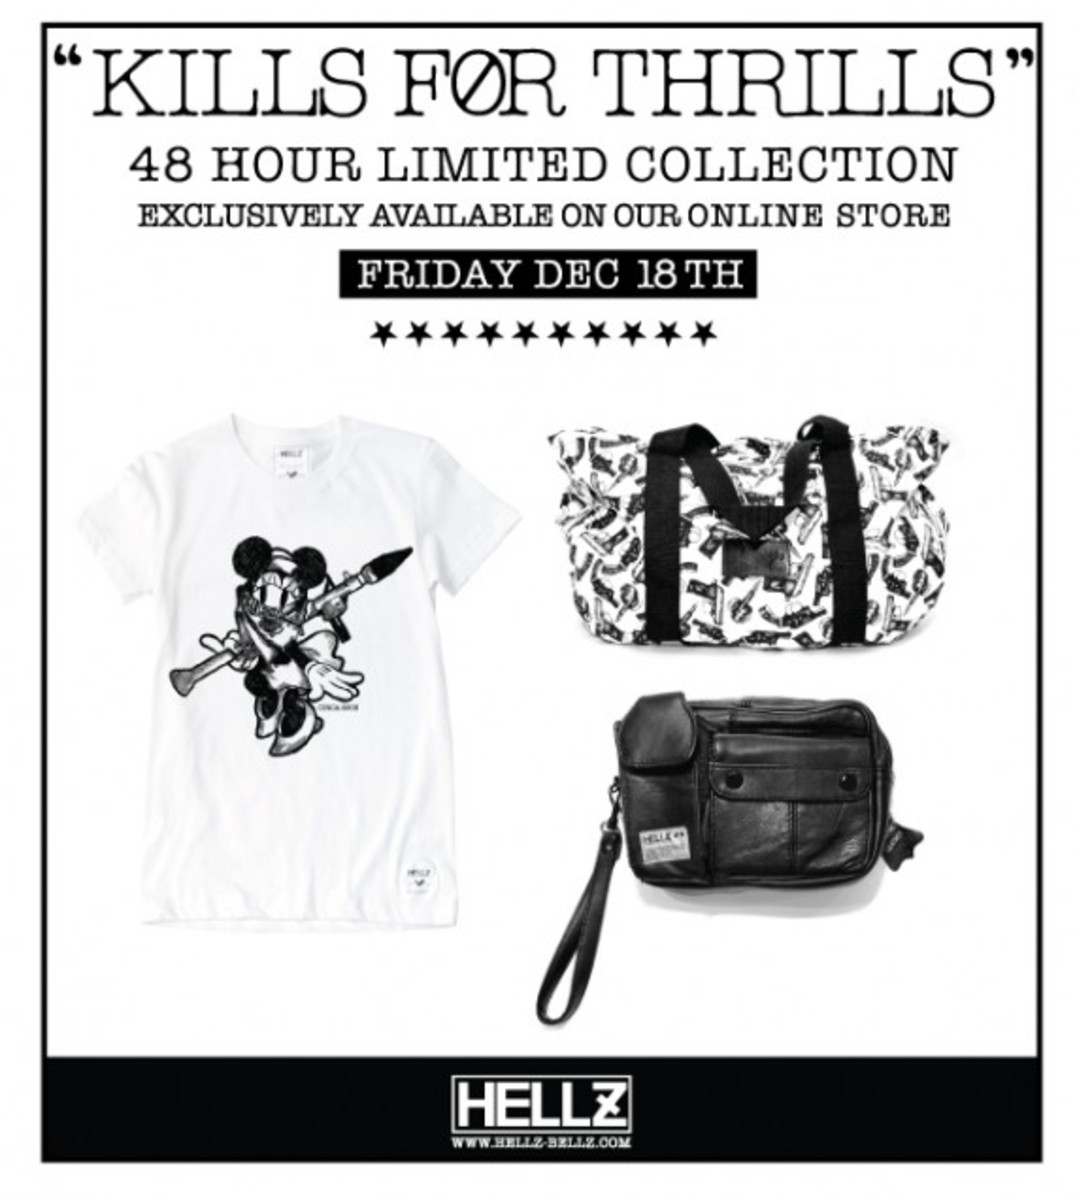 hellz_kills_for_thrills_holiday_collection_1